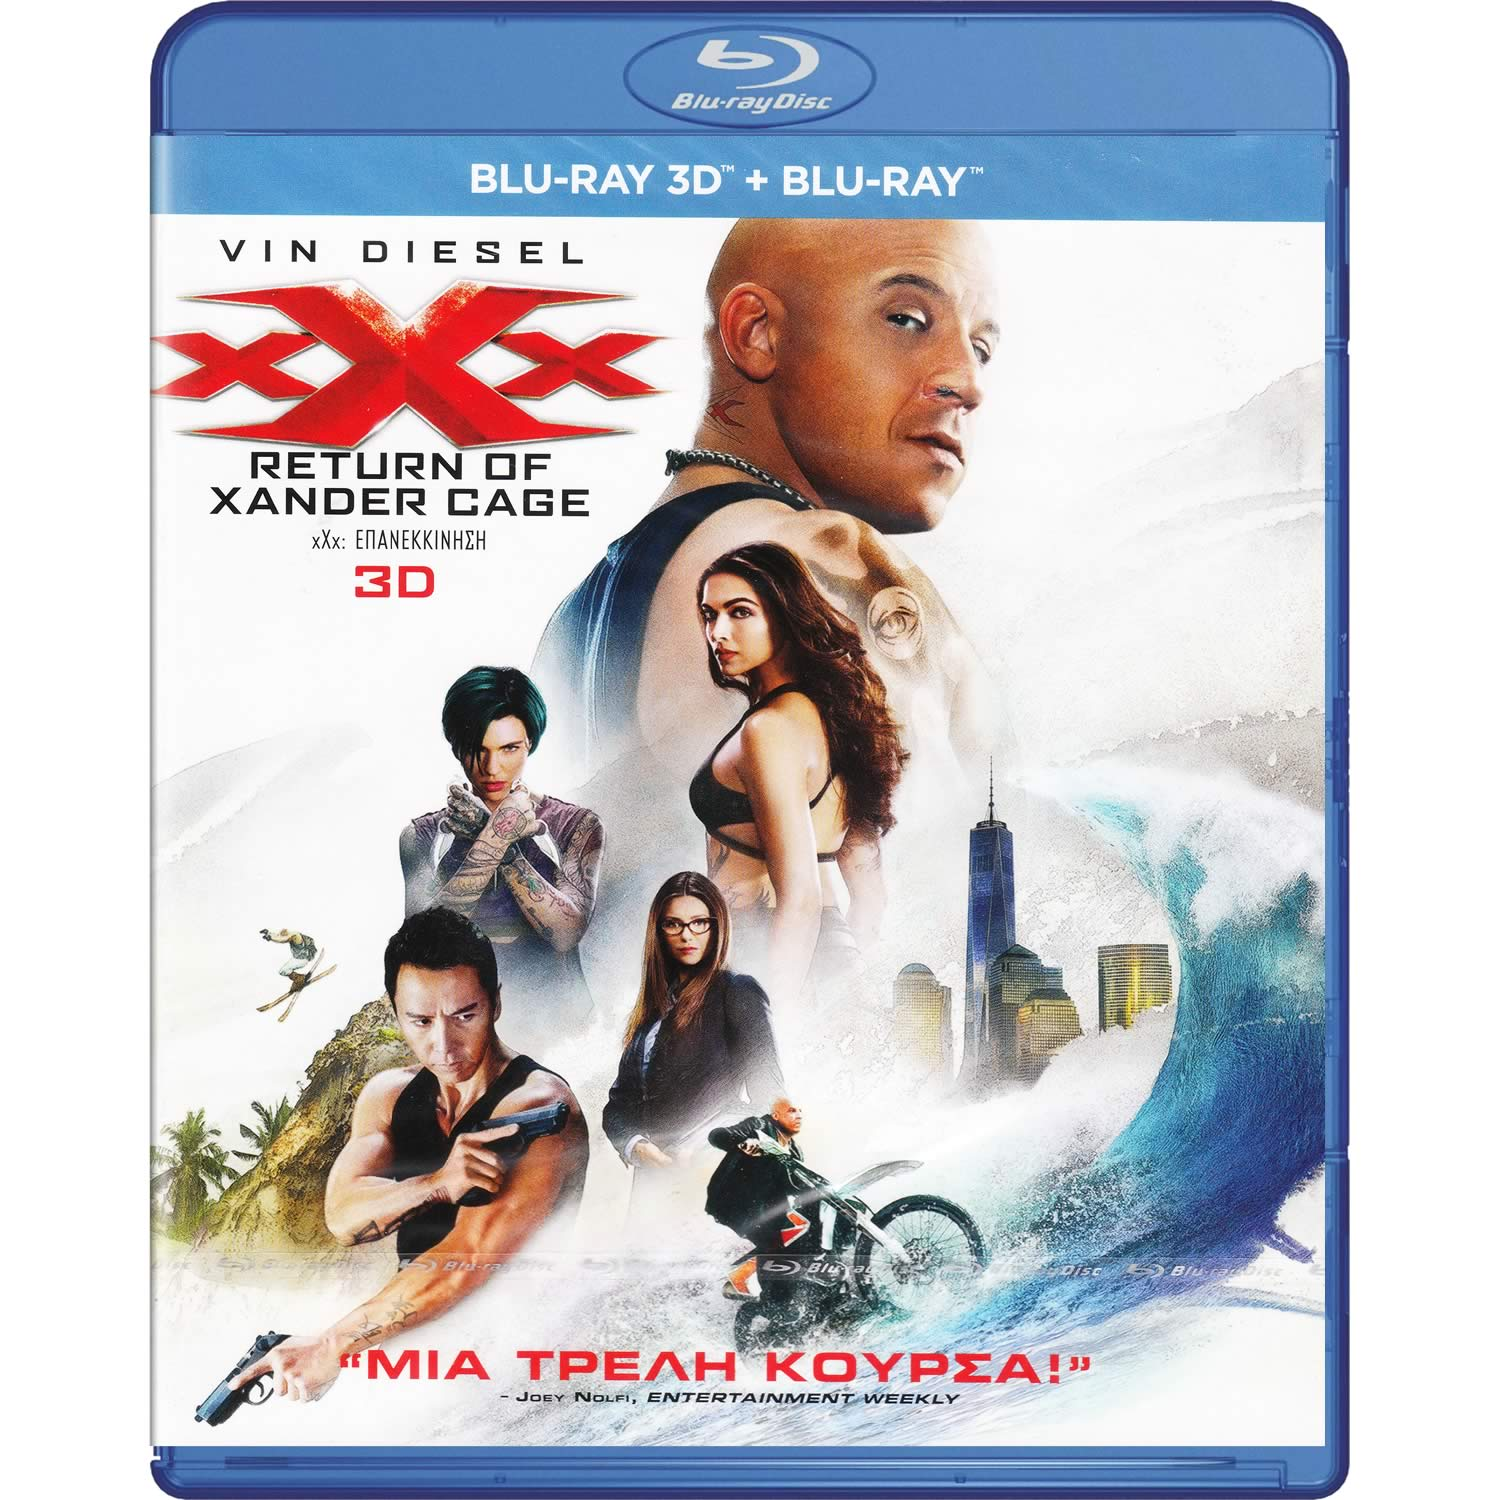 XXX: RETURN OF XANDER CAGE 3D (BLU-RAY 3D + BLU-RAY)